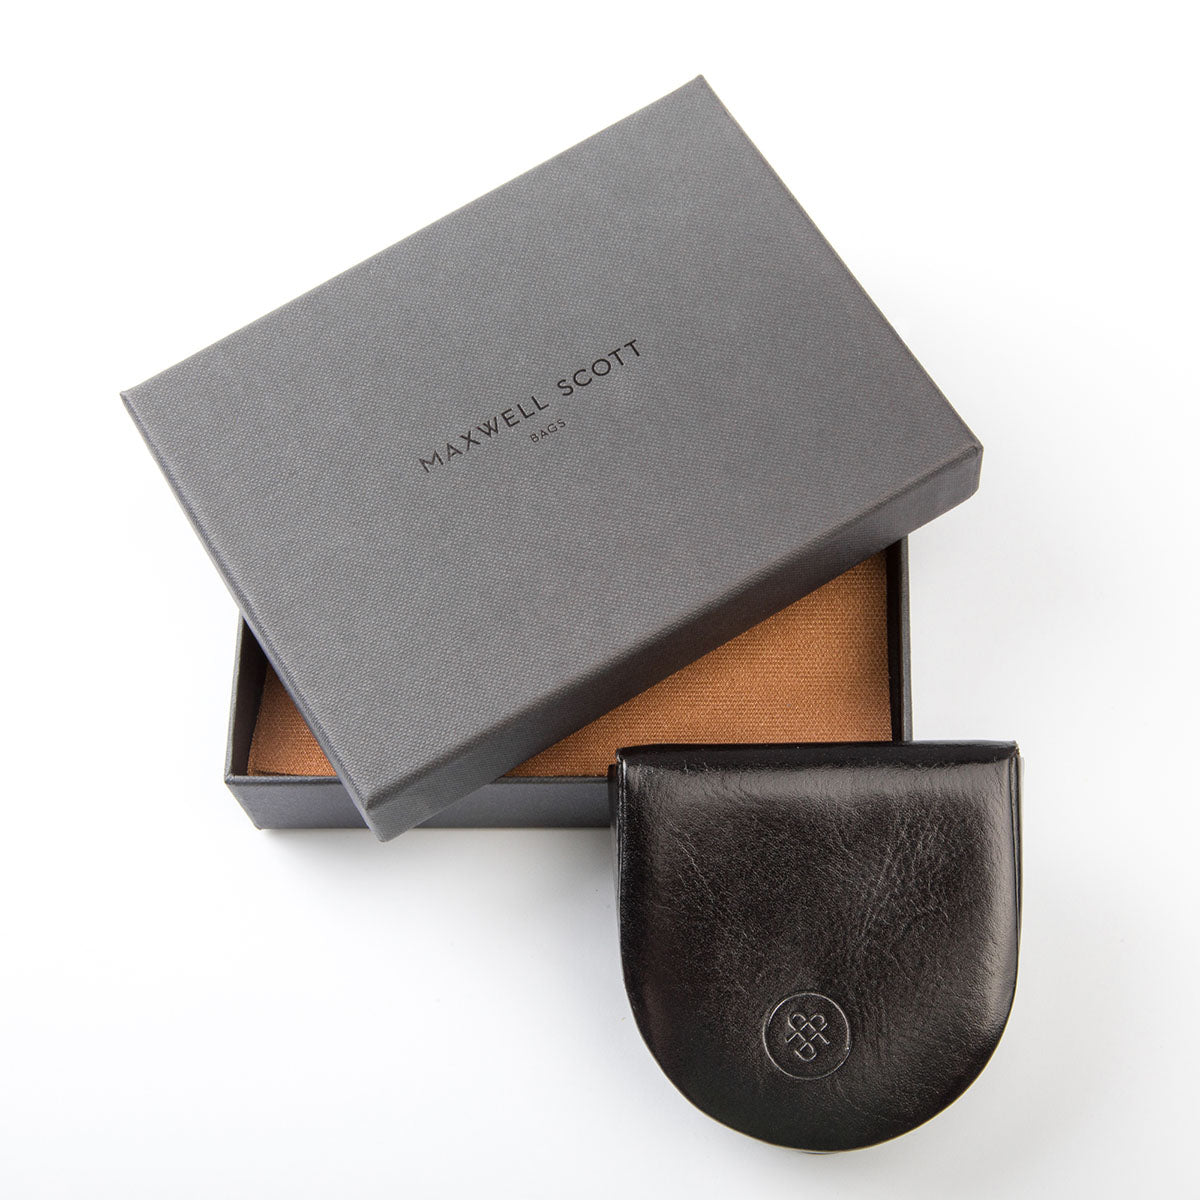 Image 5 of the 'Savino' Black Veg-Tanned Leather Coin Wallet